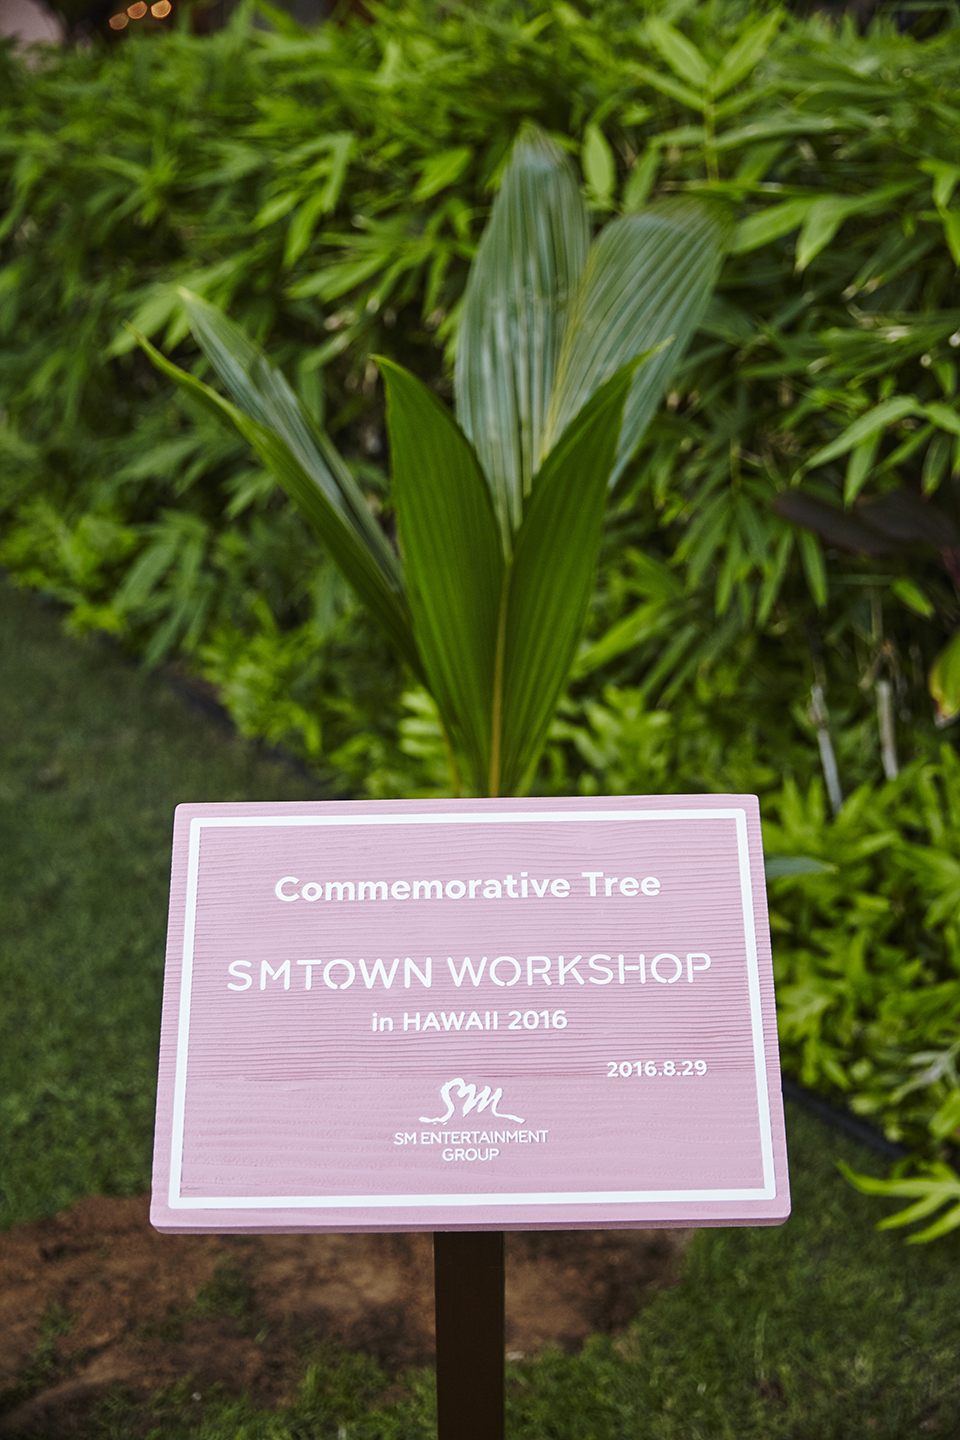 SMTOWN Workshop Commemorative Tree